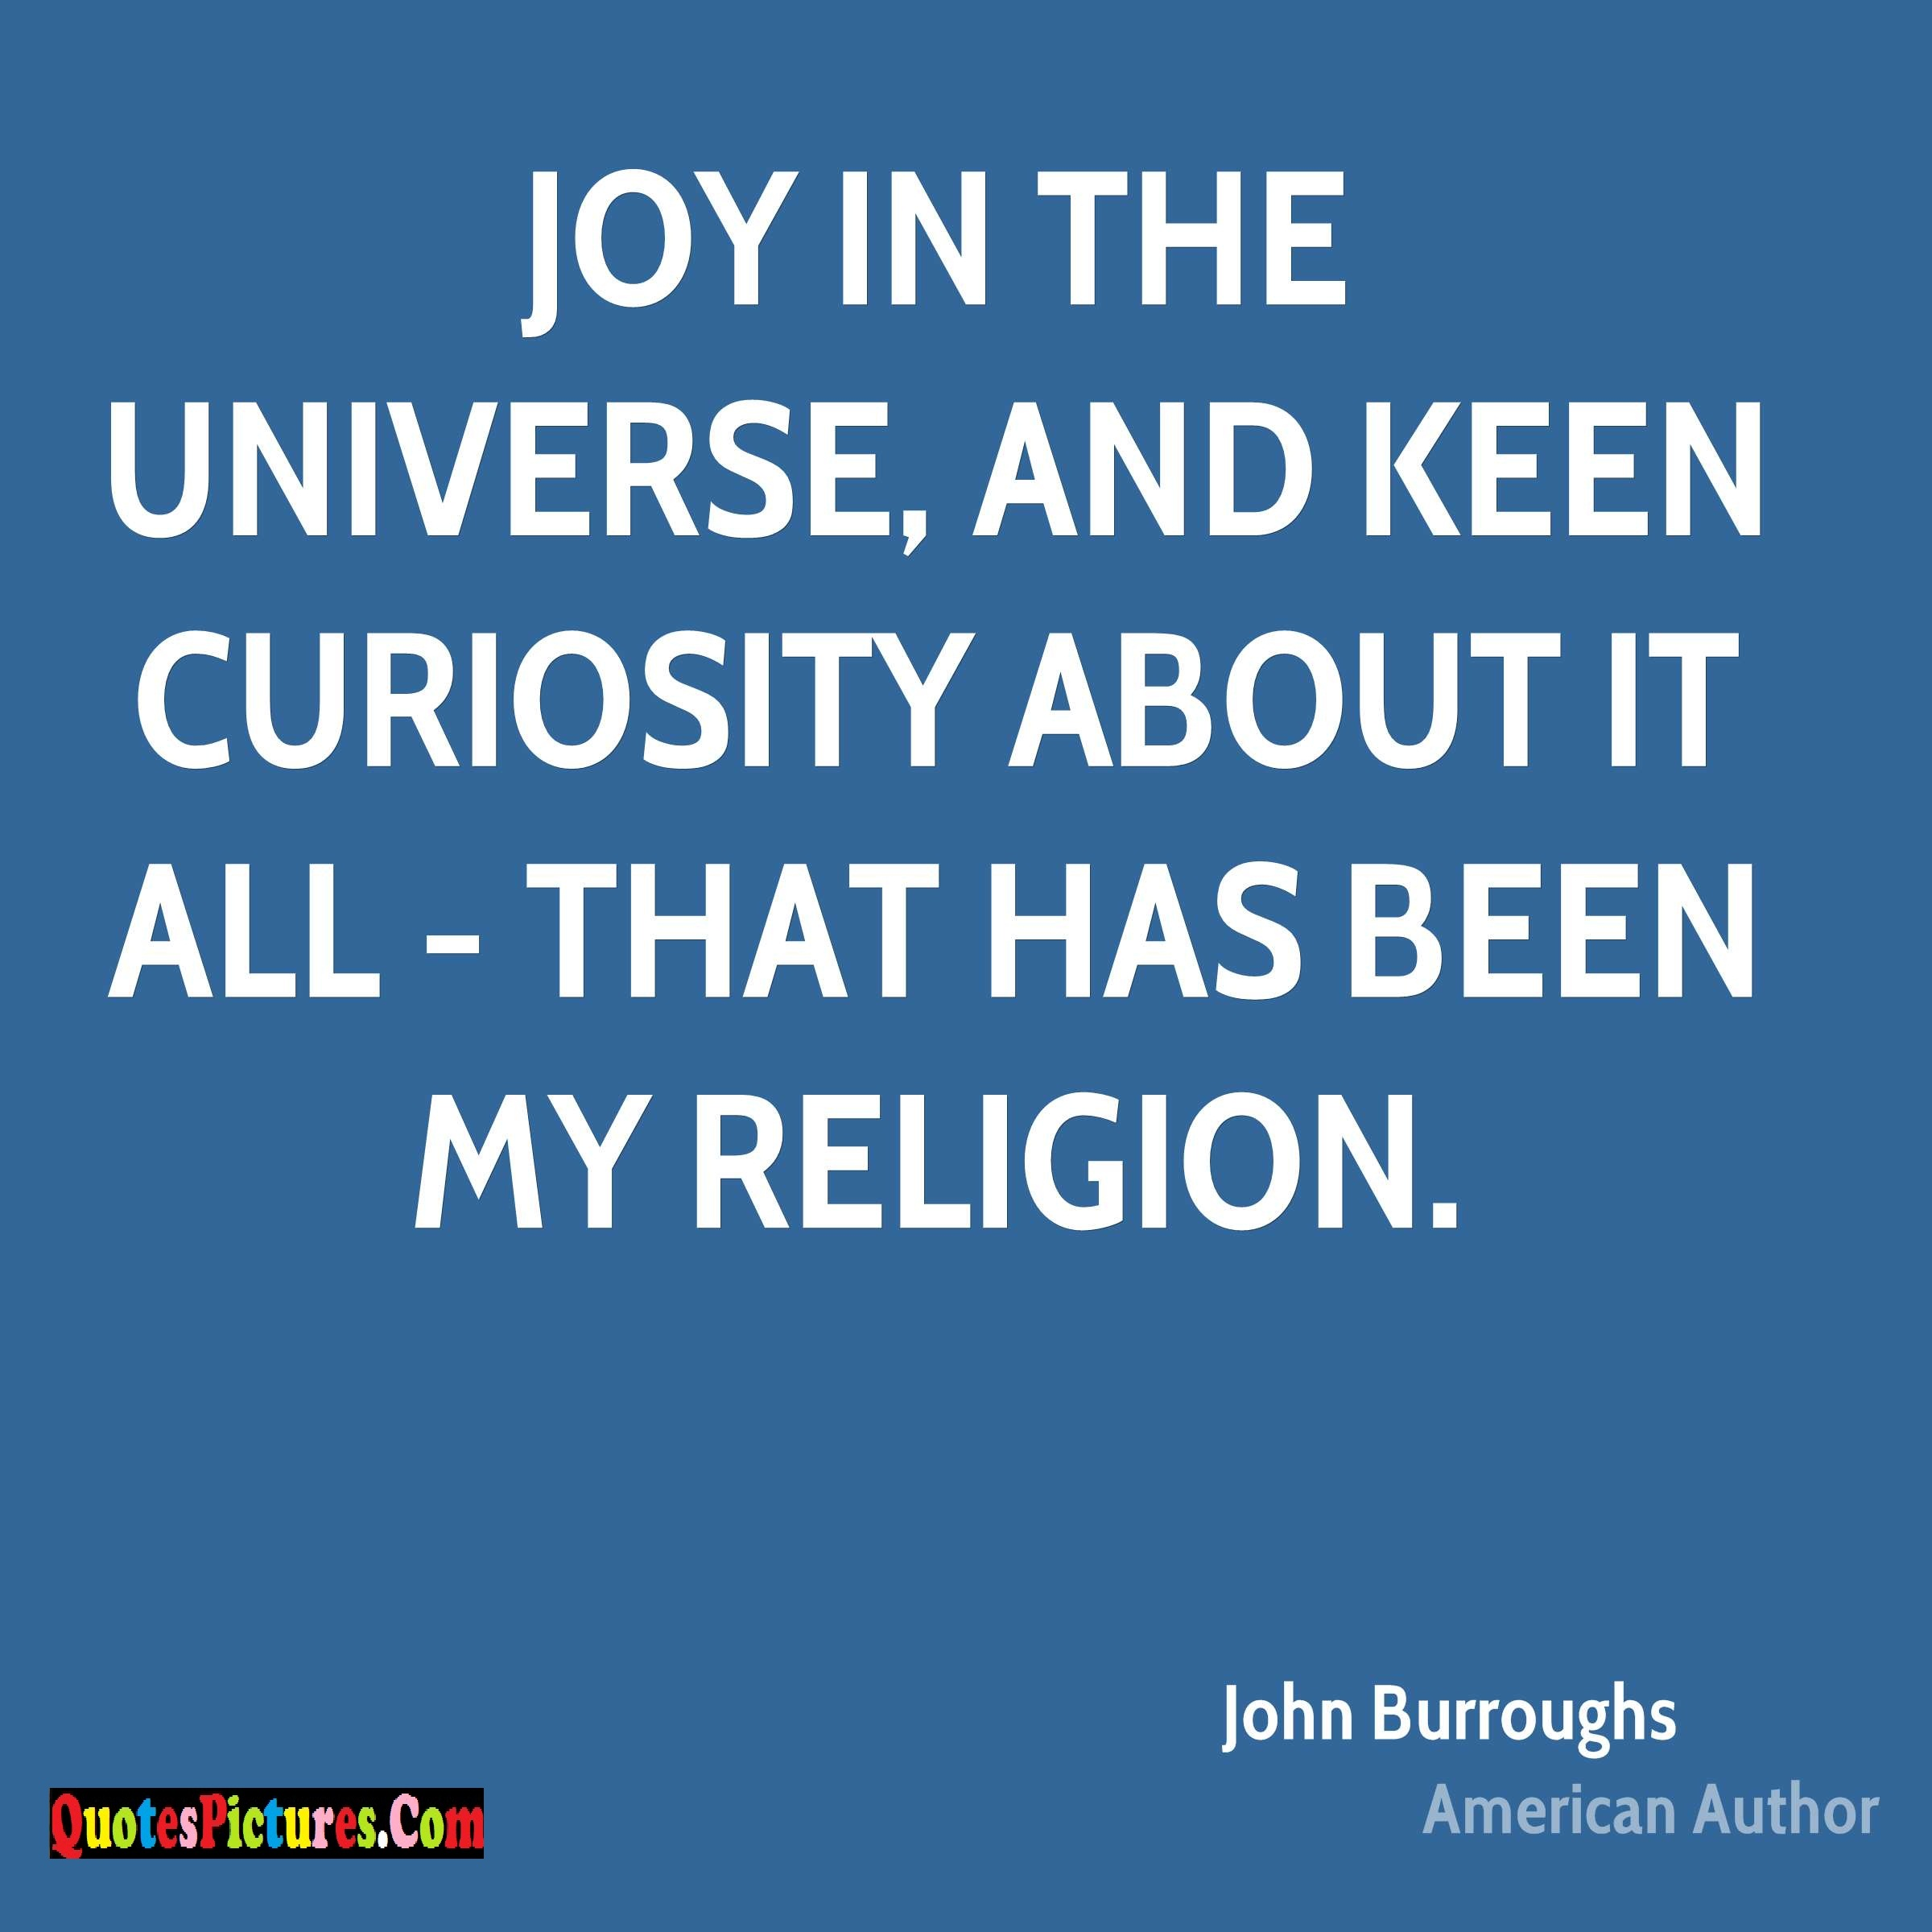 Perfect Joy Quote - Joy In The Universe, And Keen Curiosity About It All - That Has Been My Religion. - John Burroughs